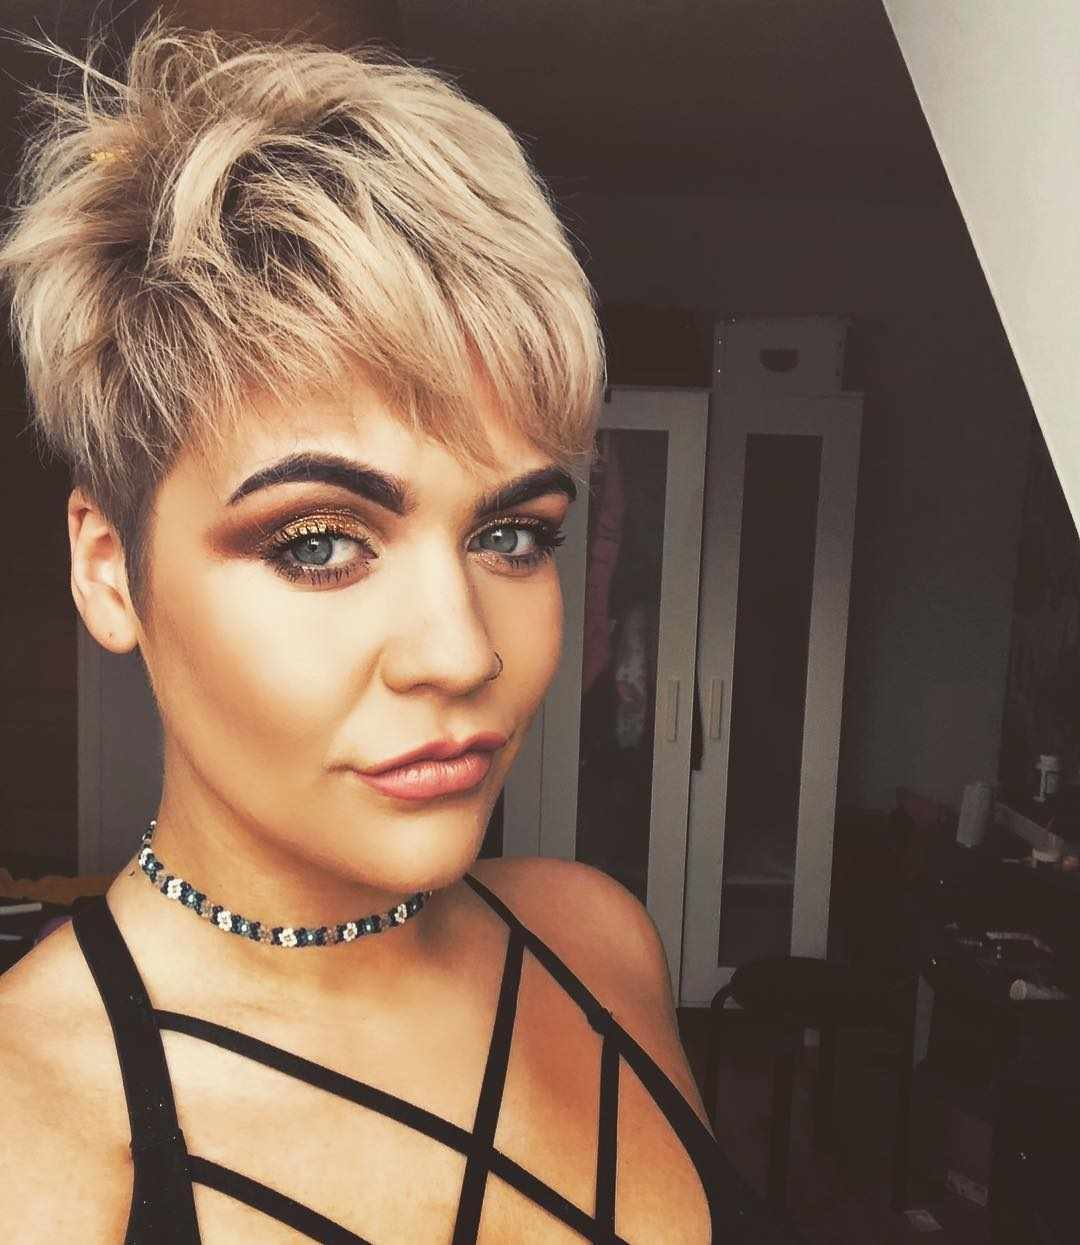 The Best Latest Trend Pixie And Bob Short Hairstyles 2019 Pictures